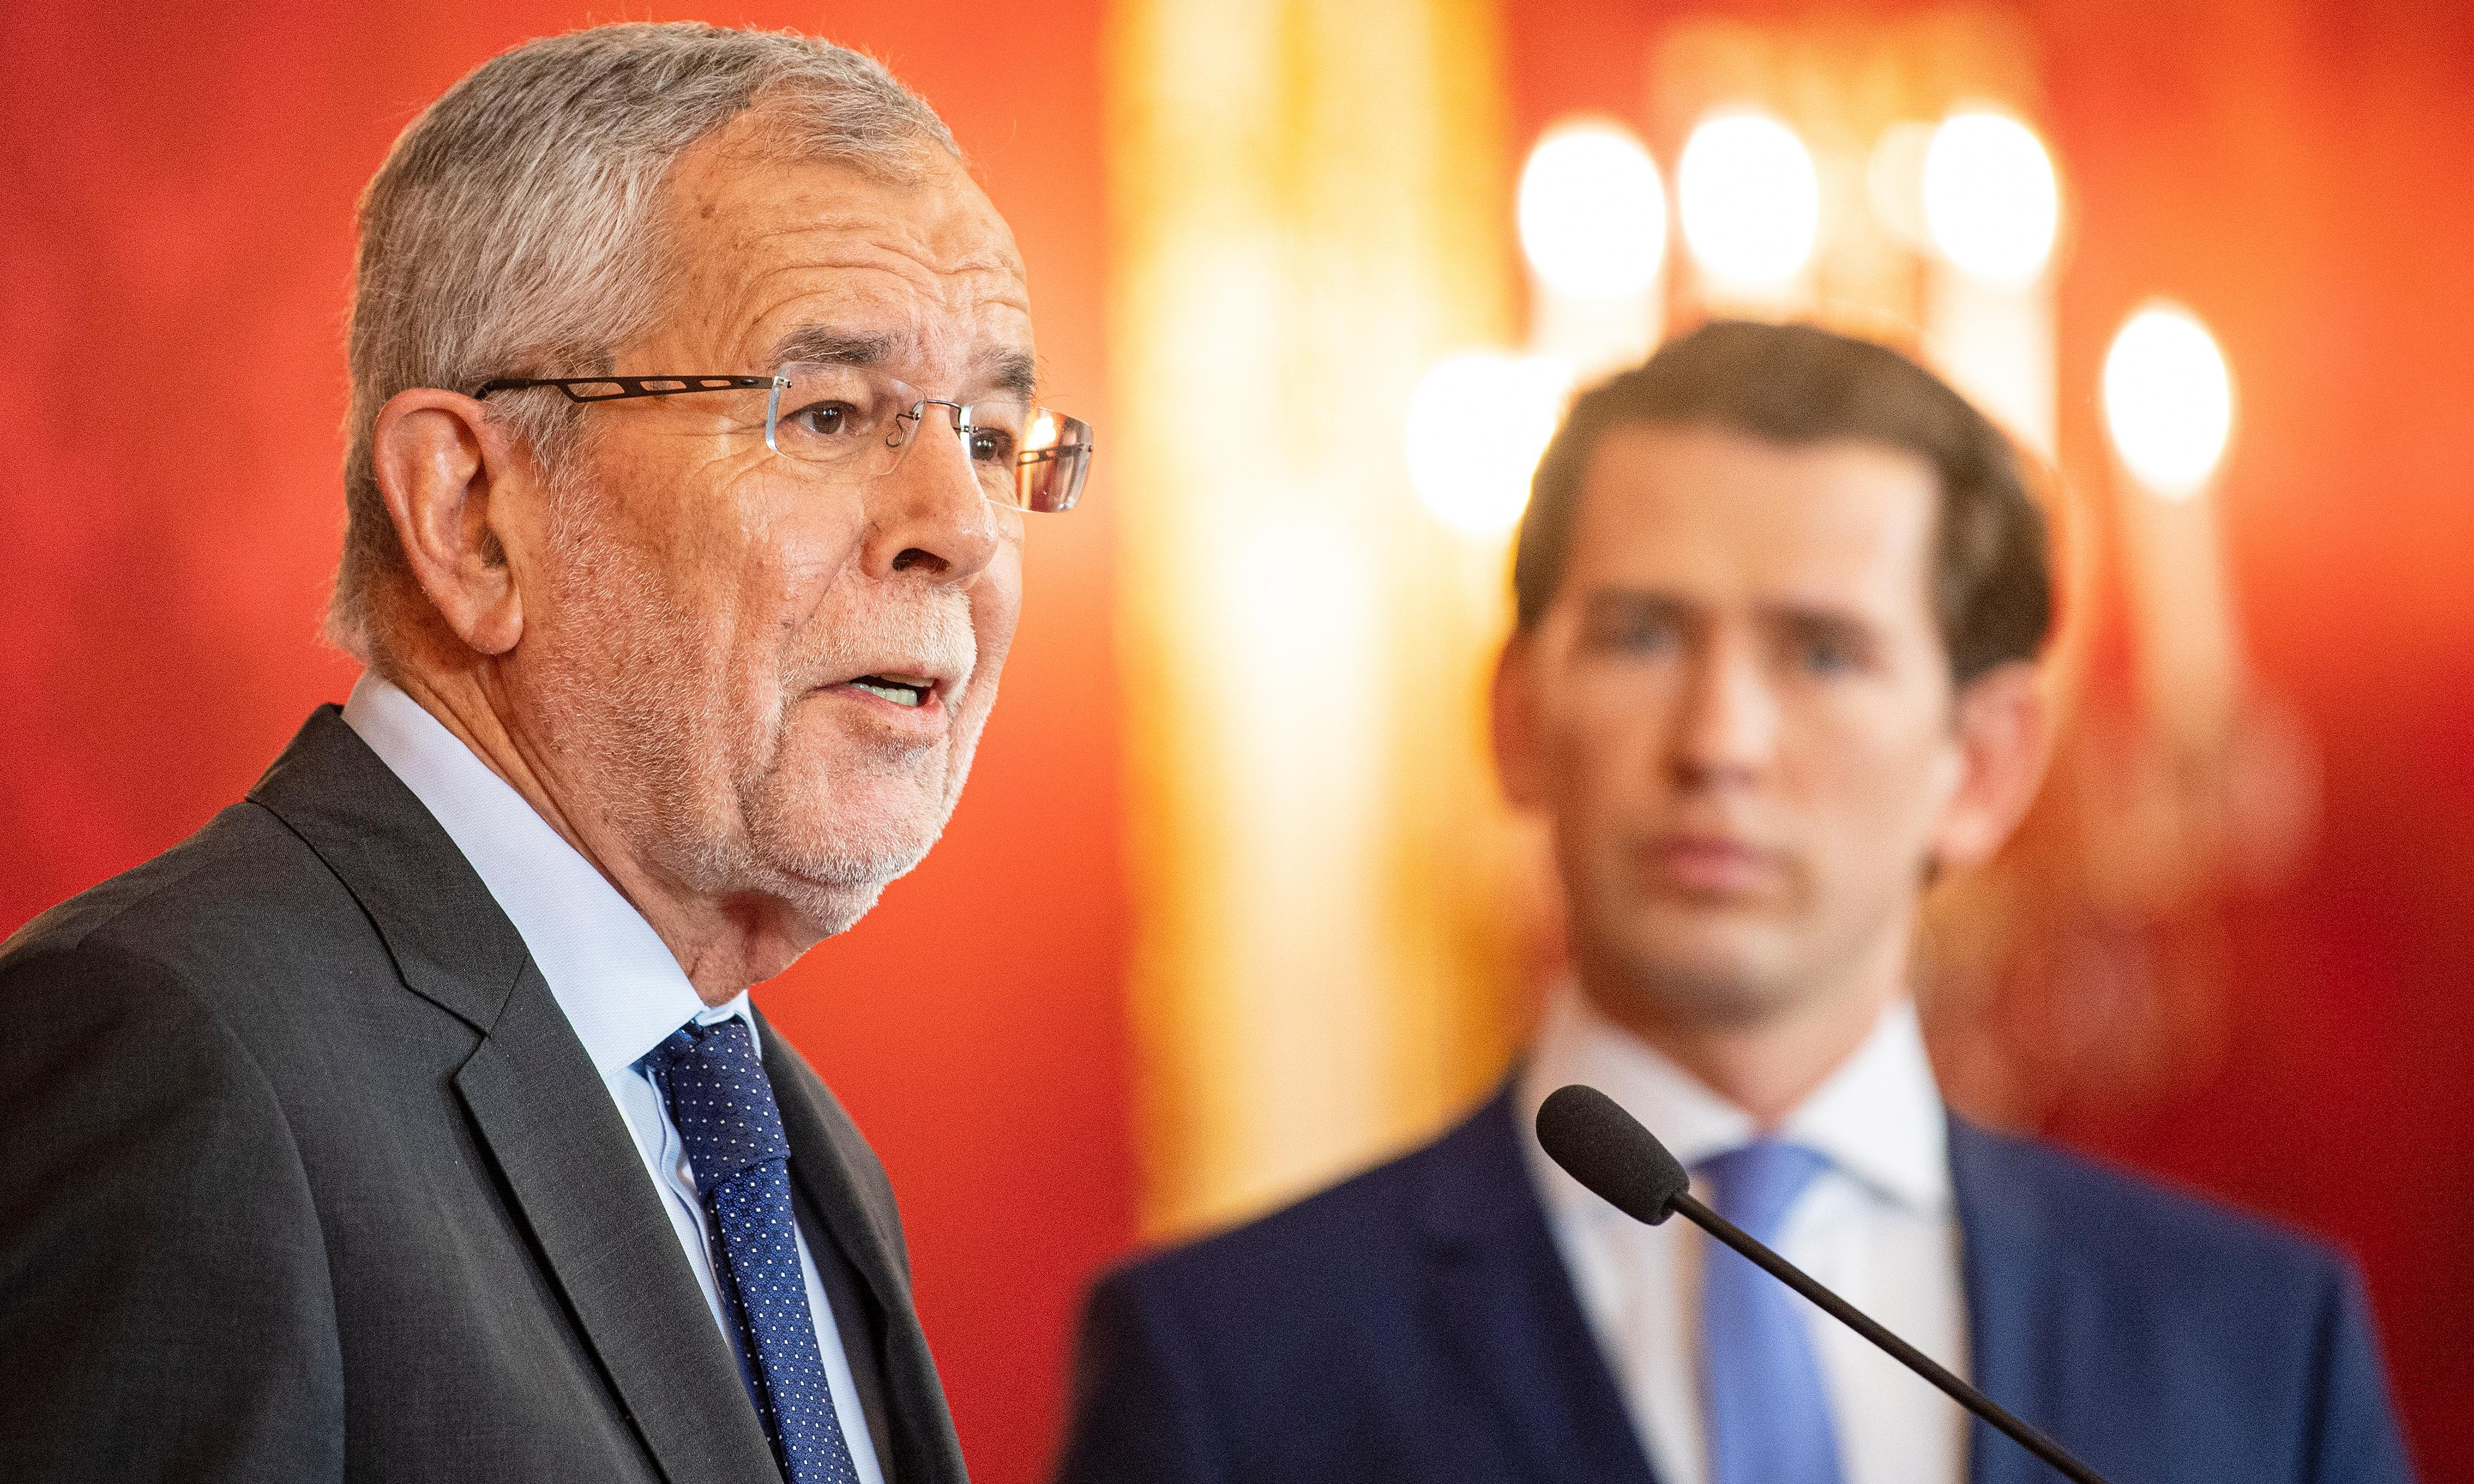 Austria prepares for fresh elections after Ibiza video scandal